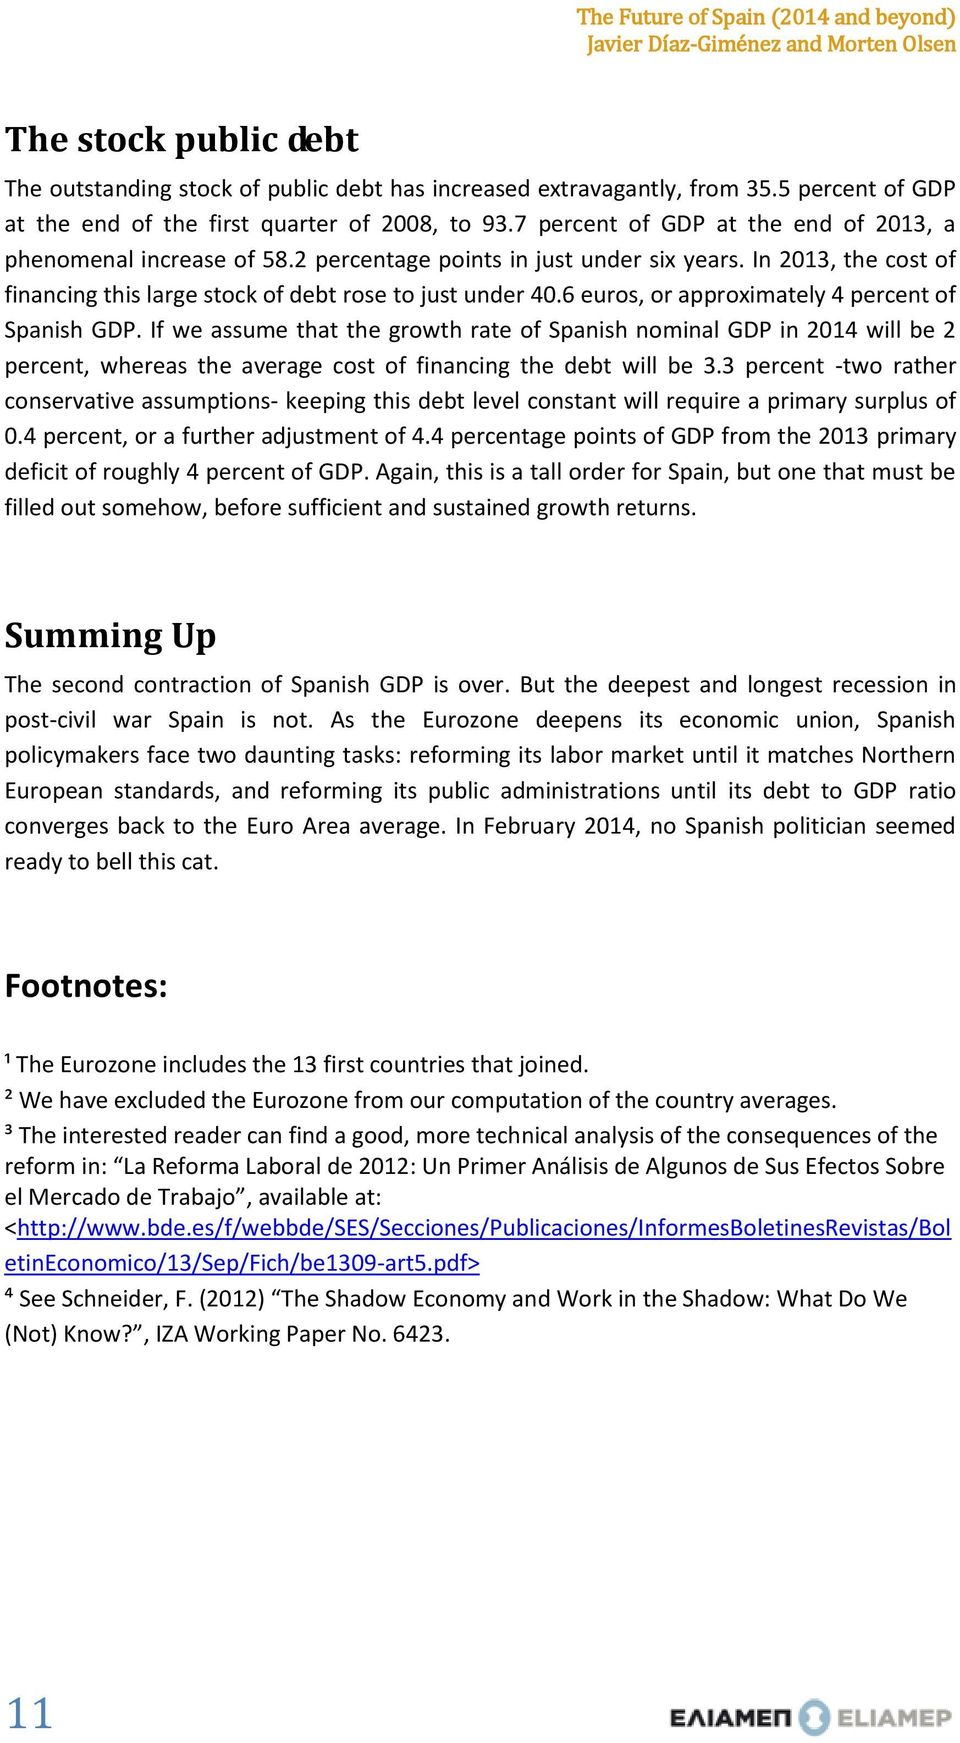 6 euros, or approximately 4 percent of Spanish GDP. If we assume that the growth rate of Spanish nominal GDP in 2014 will be 2 percent, whereas the average cost of financing the debt will be 3.